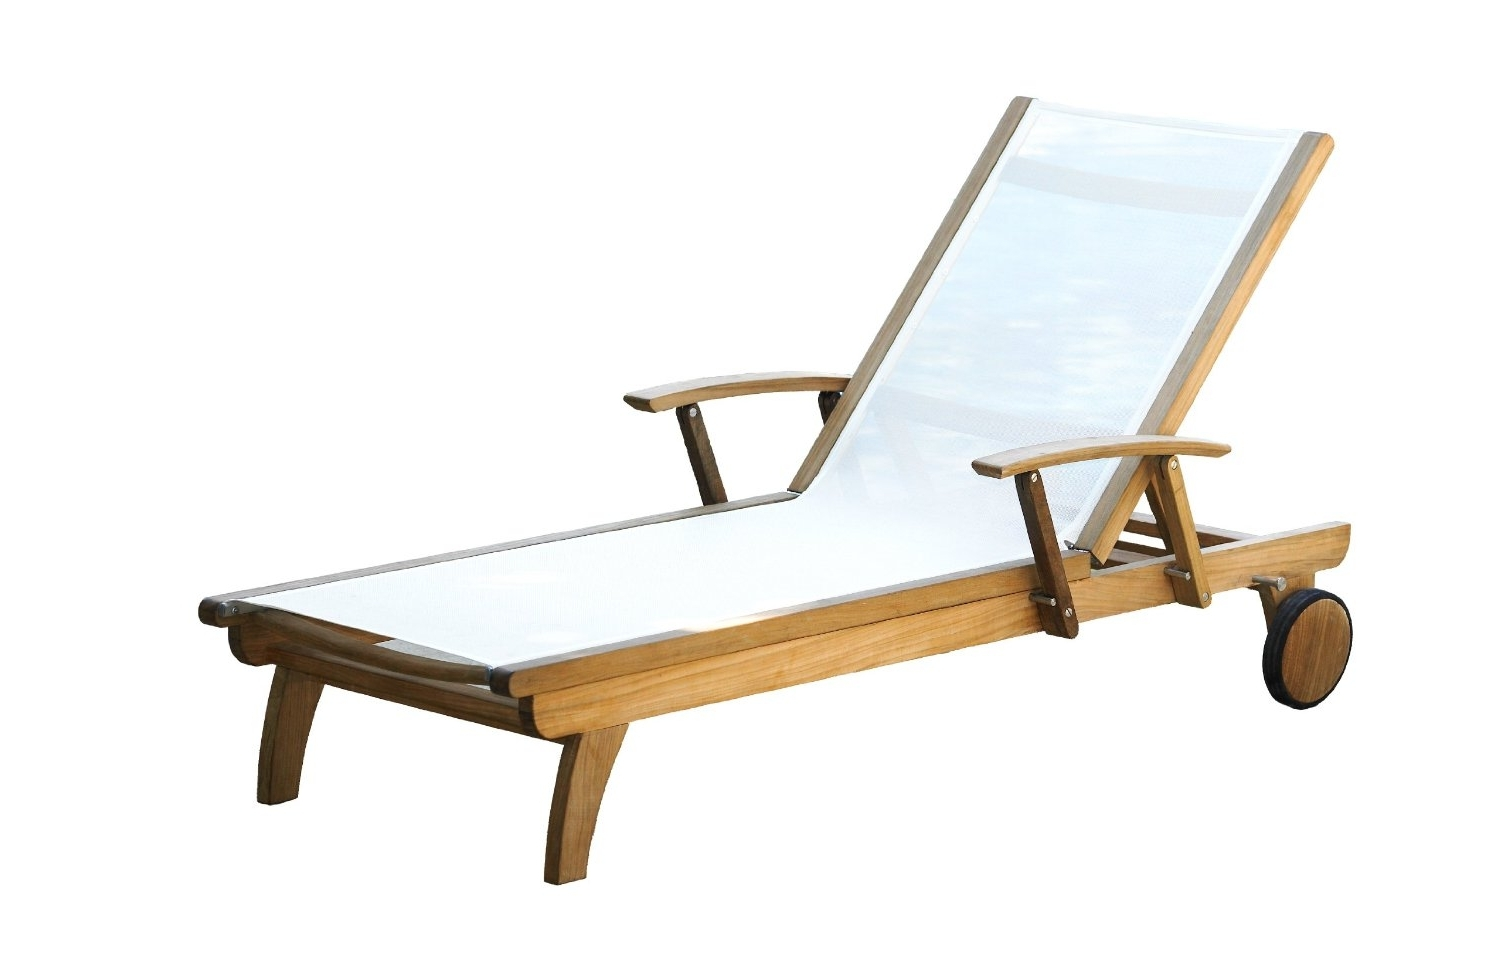 Teak Chaise Lounges Intended For Famous Teak Chaise Lounge Chair – Teak Patio Furniture World (View 9 of 15)